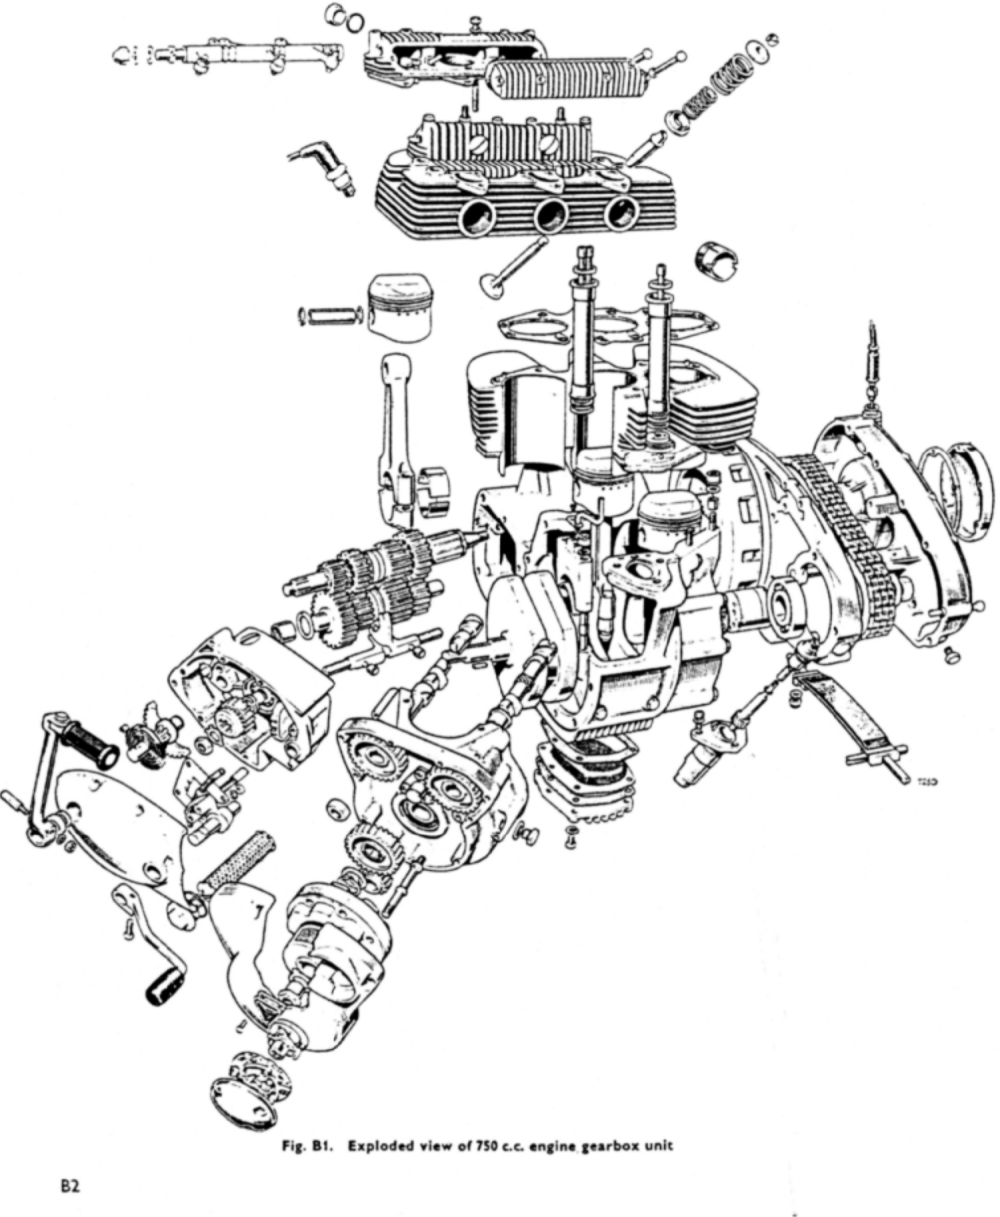 2001 Grand Am Engine Diagram - Good Guide Of Wiring Diagram • on grand am oil filter, grand am cooling diagram, 01 grand prix fuse diagram, 2000 pontiac grand am diagram, grand am fuse diagram, 2007 pontiac grand prix engine diagram, grand am head unit wiring, grand am fuel diagram, grand am oil sending unit, grand am motor diagram, grand am rear speakers, grand am speaker wiring, grand am oil leak, 2004 pontiac grand prix fuse diagram, grand am belt diagram, grand am firing order, grand am transmission diagram, grand am exhaust diagram, grand am fuel pump problems, grand am thermostat,